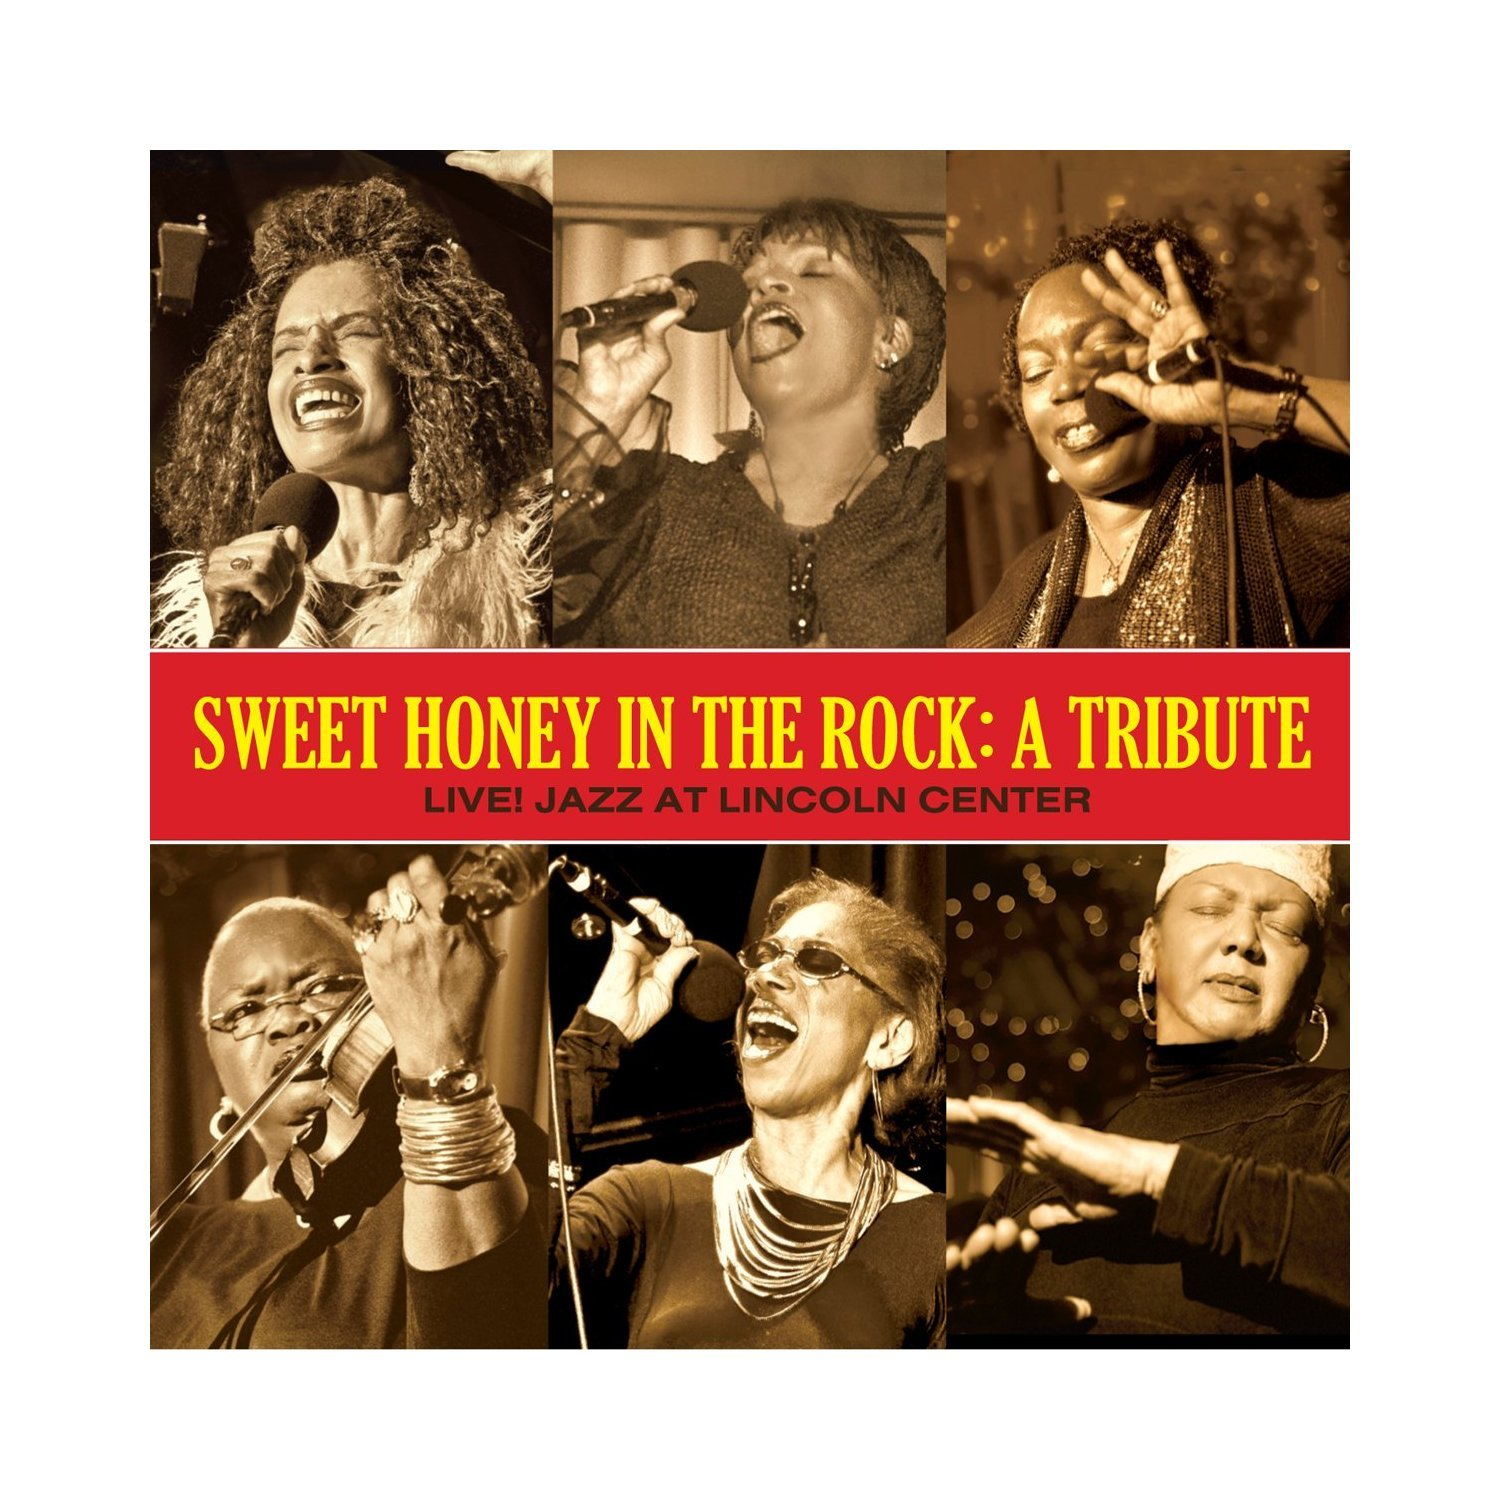 A Tribute: Live! Jazz at Lincoln Center by Sweet Honey in the Rock